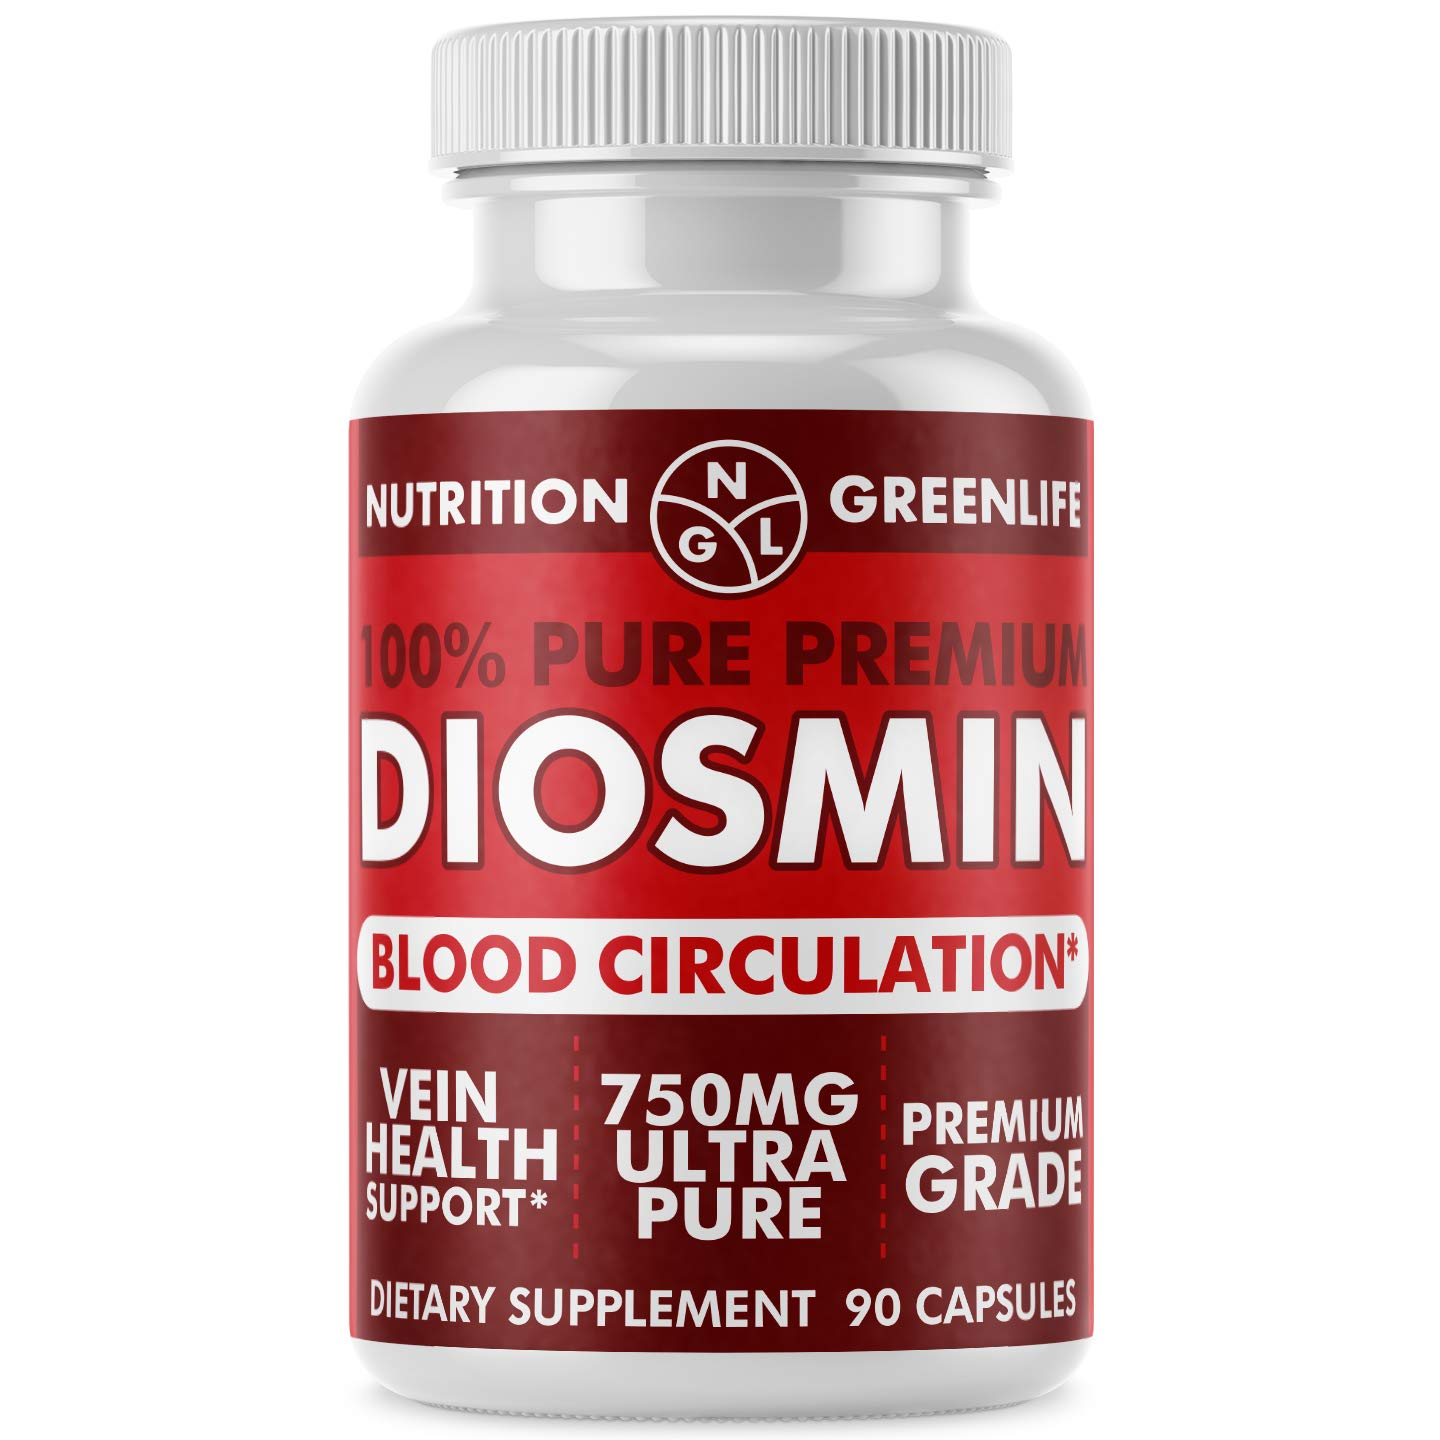 100% Pure DIOSMIN Pure Ingredient no Mixes or Additives for Blood Circulation, Leg Veins Health, Purity Guarantee Best Quality 90 Capsules